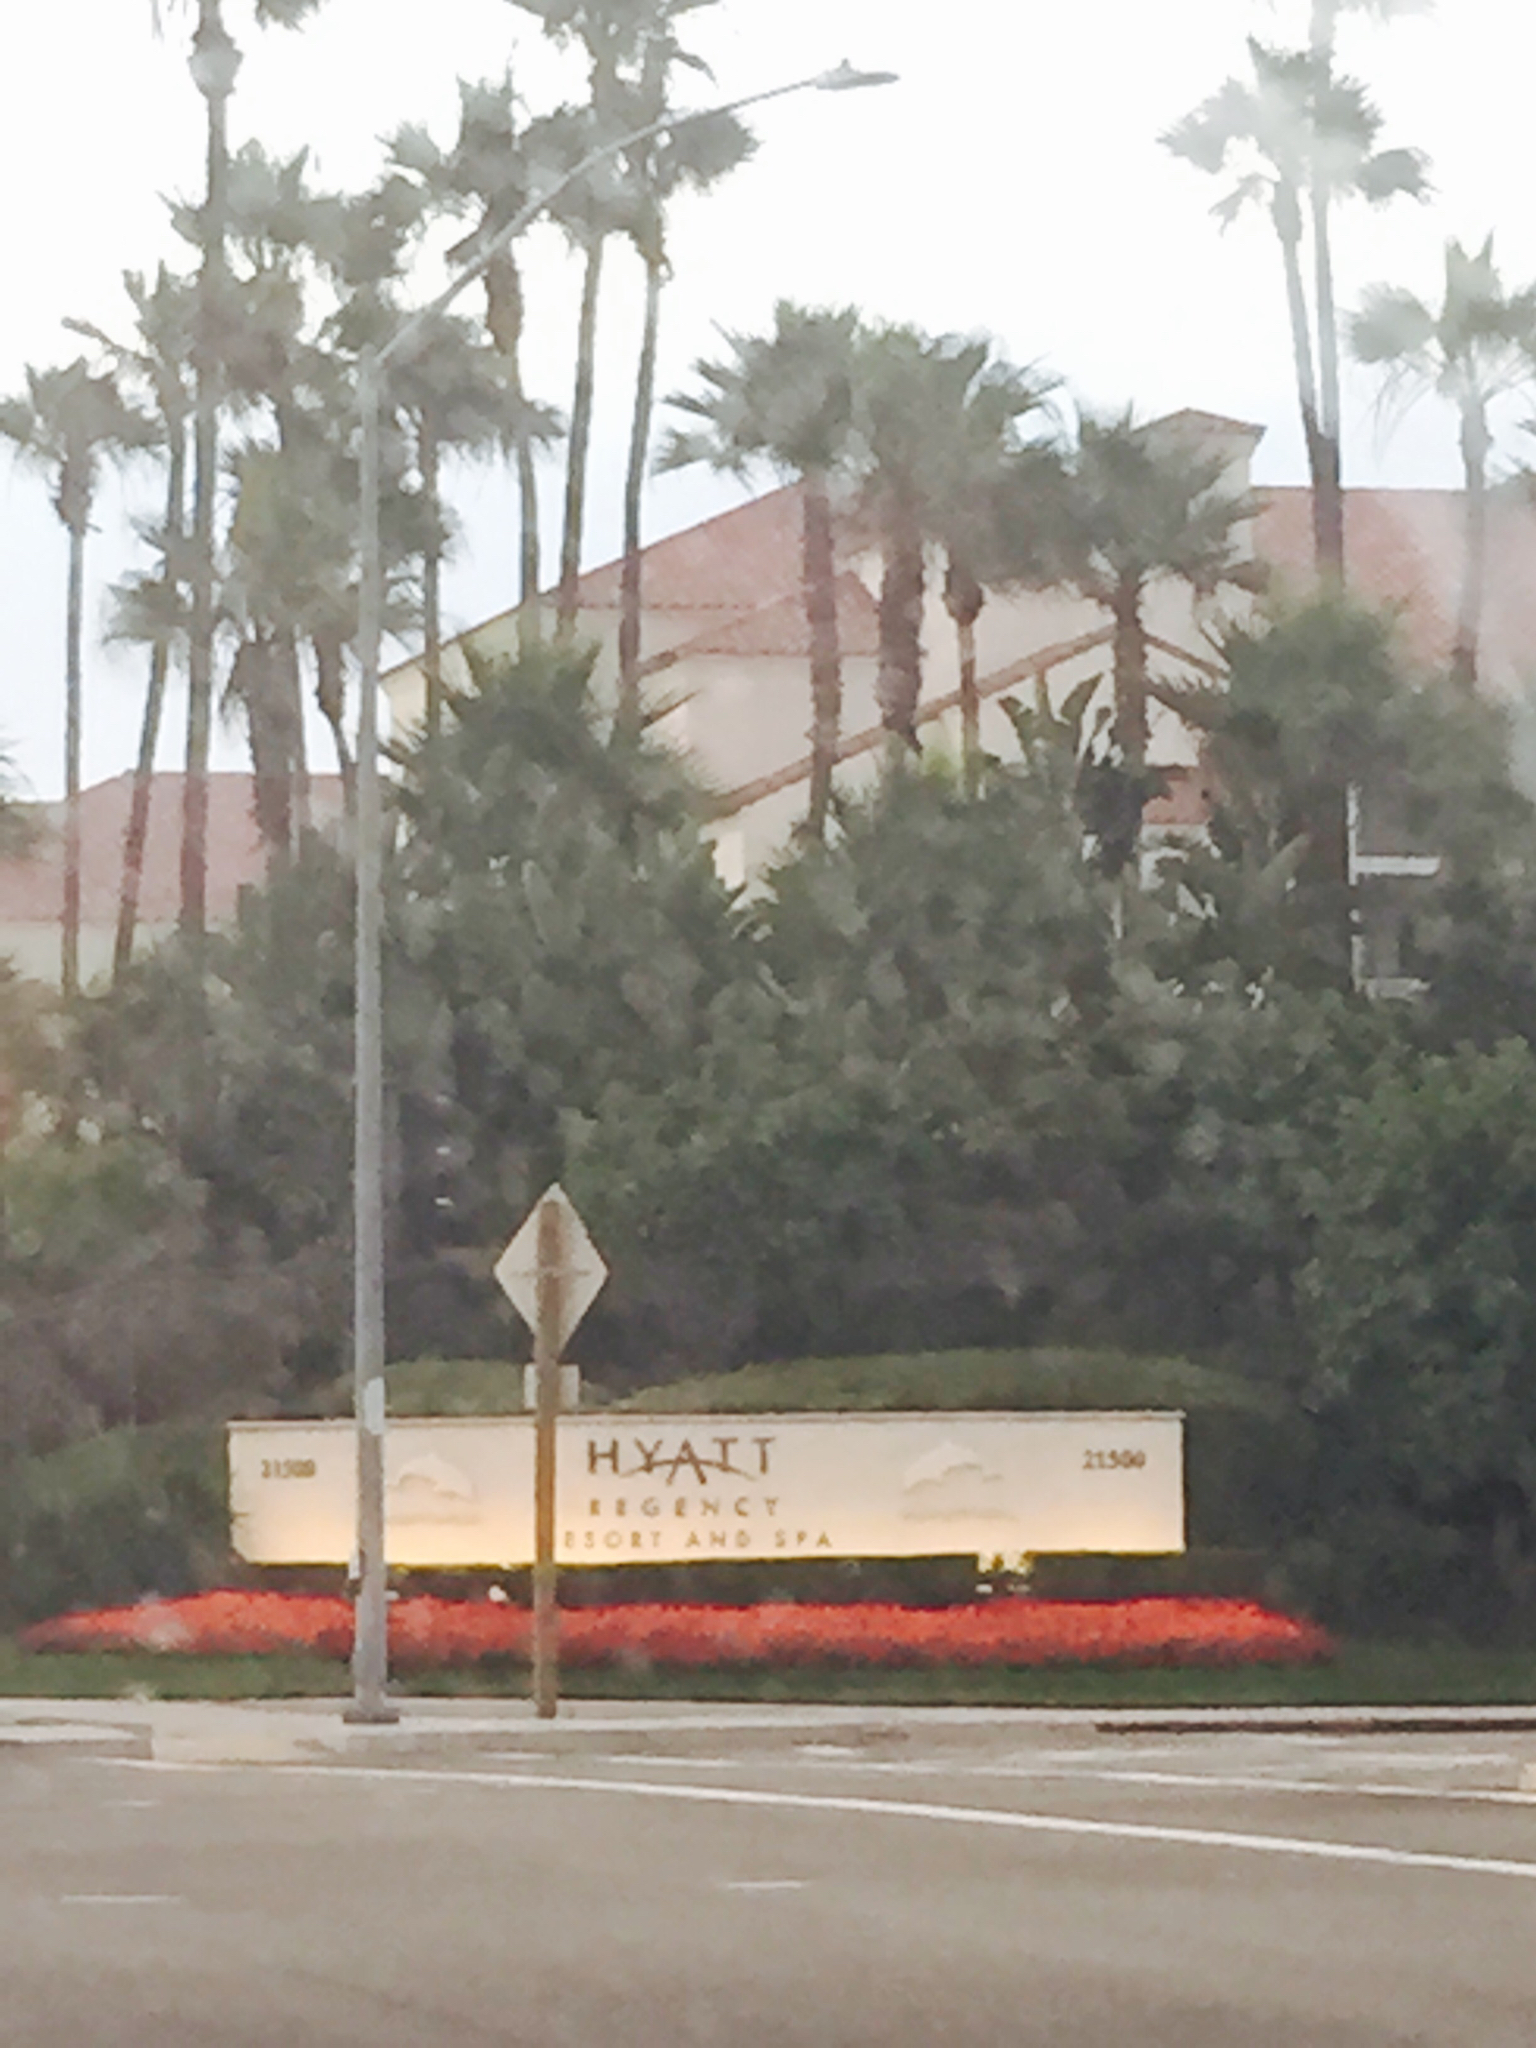 Hyatt Regency Huntington Beach Resort and Spa, Huntington Beach CA